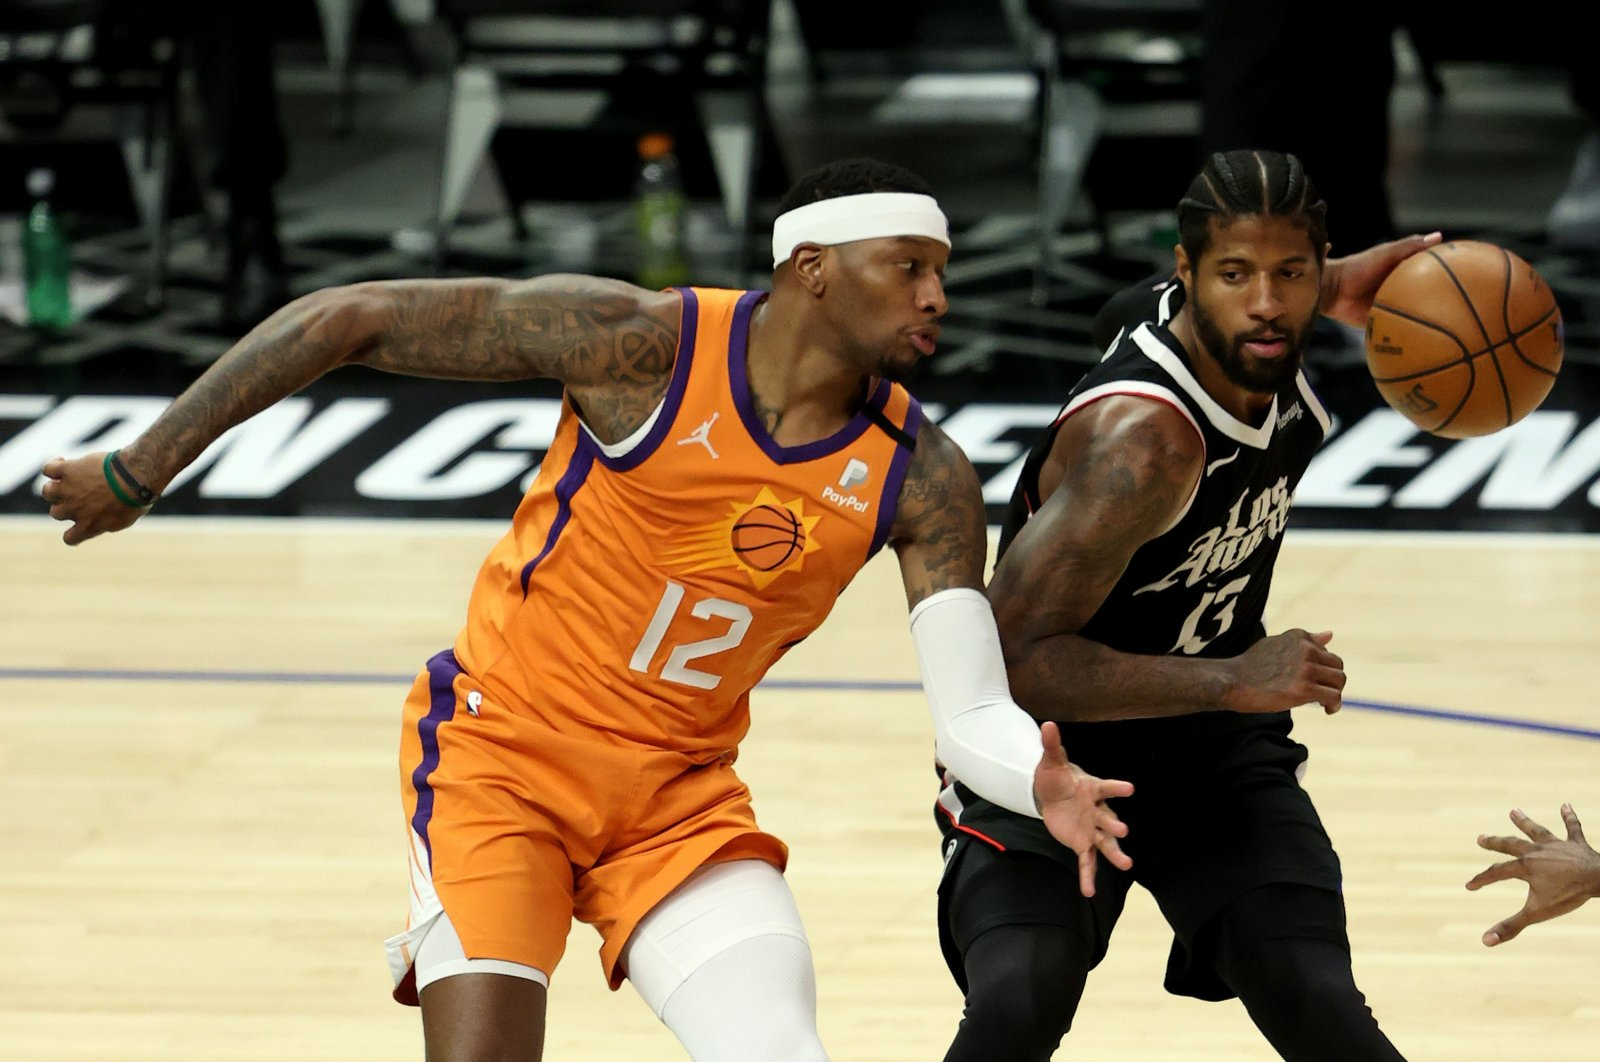 LA Clippers' Paul George (R) tries to keep possession againstPhoenix Suns' Torrey Craig during Game 3 of the Western Conference Finals at Staples Center, Los Angeles, California, U.S., June 24, 2021. (AFP Photo)